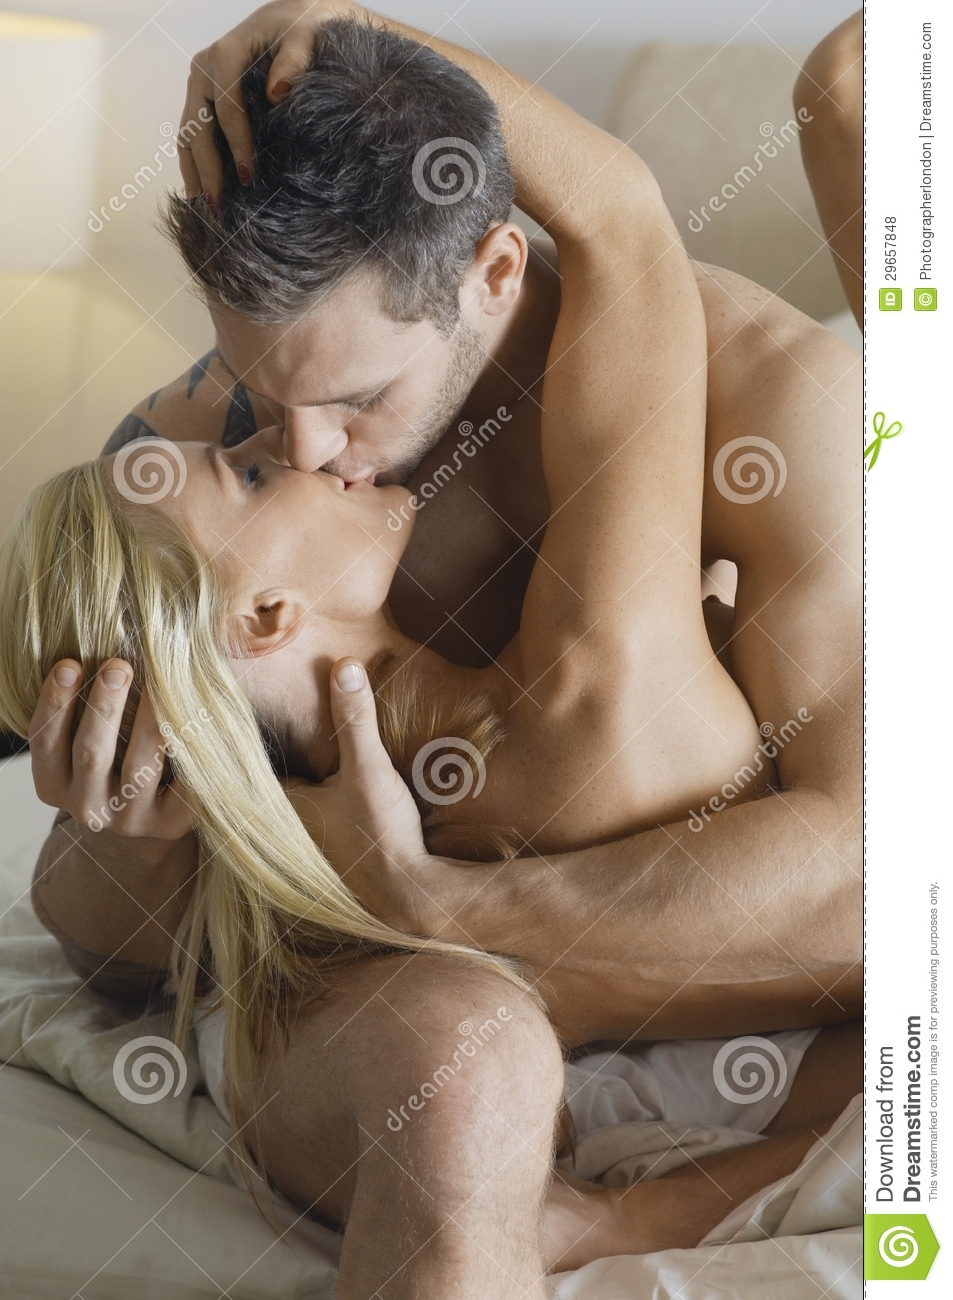 Naked passionate kissing in bed